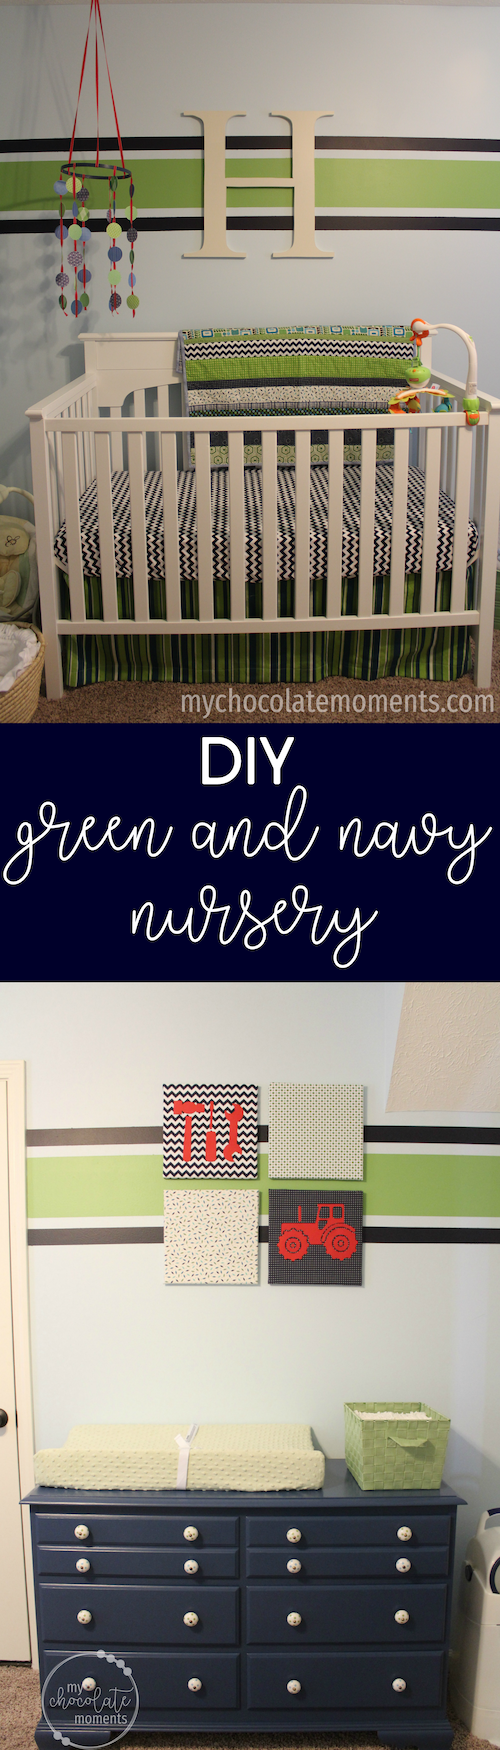 DIY green and navy nursery